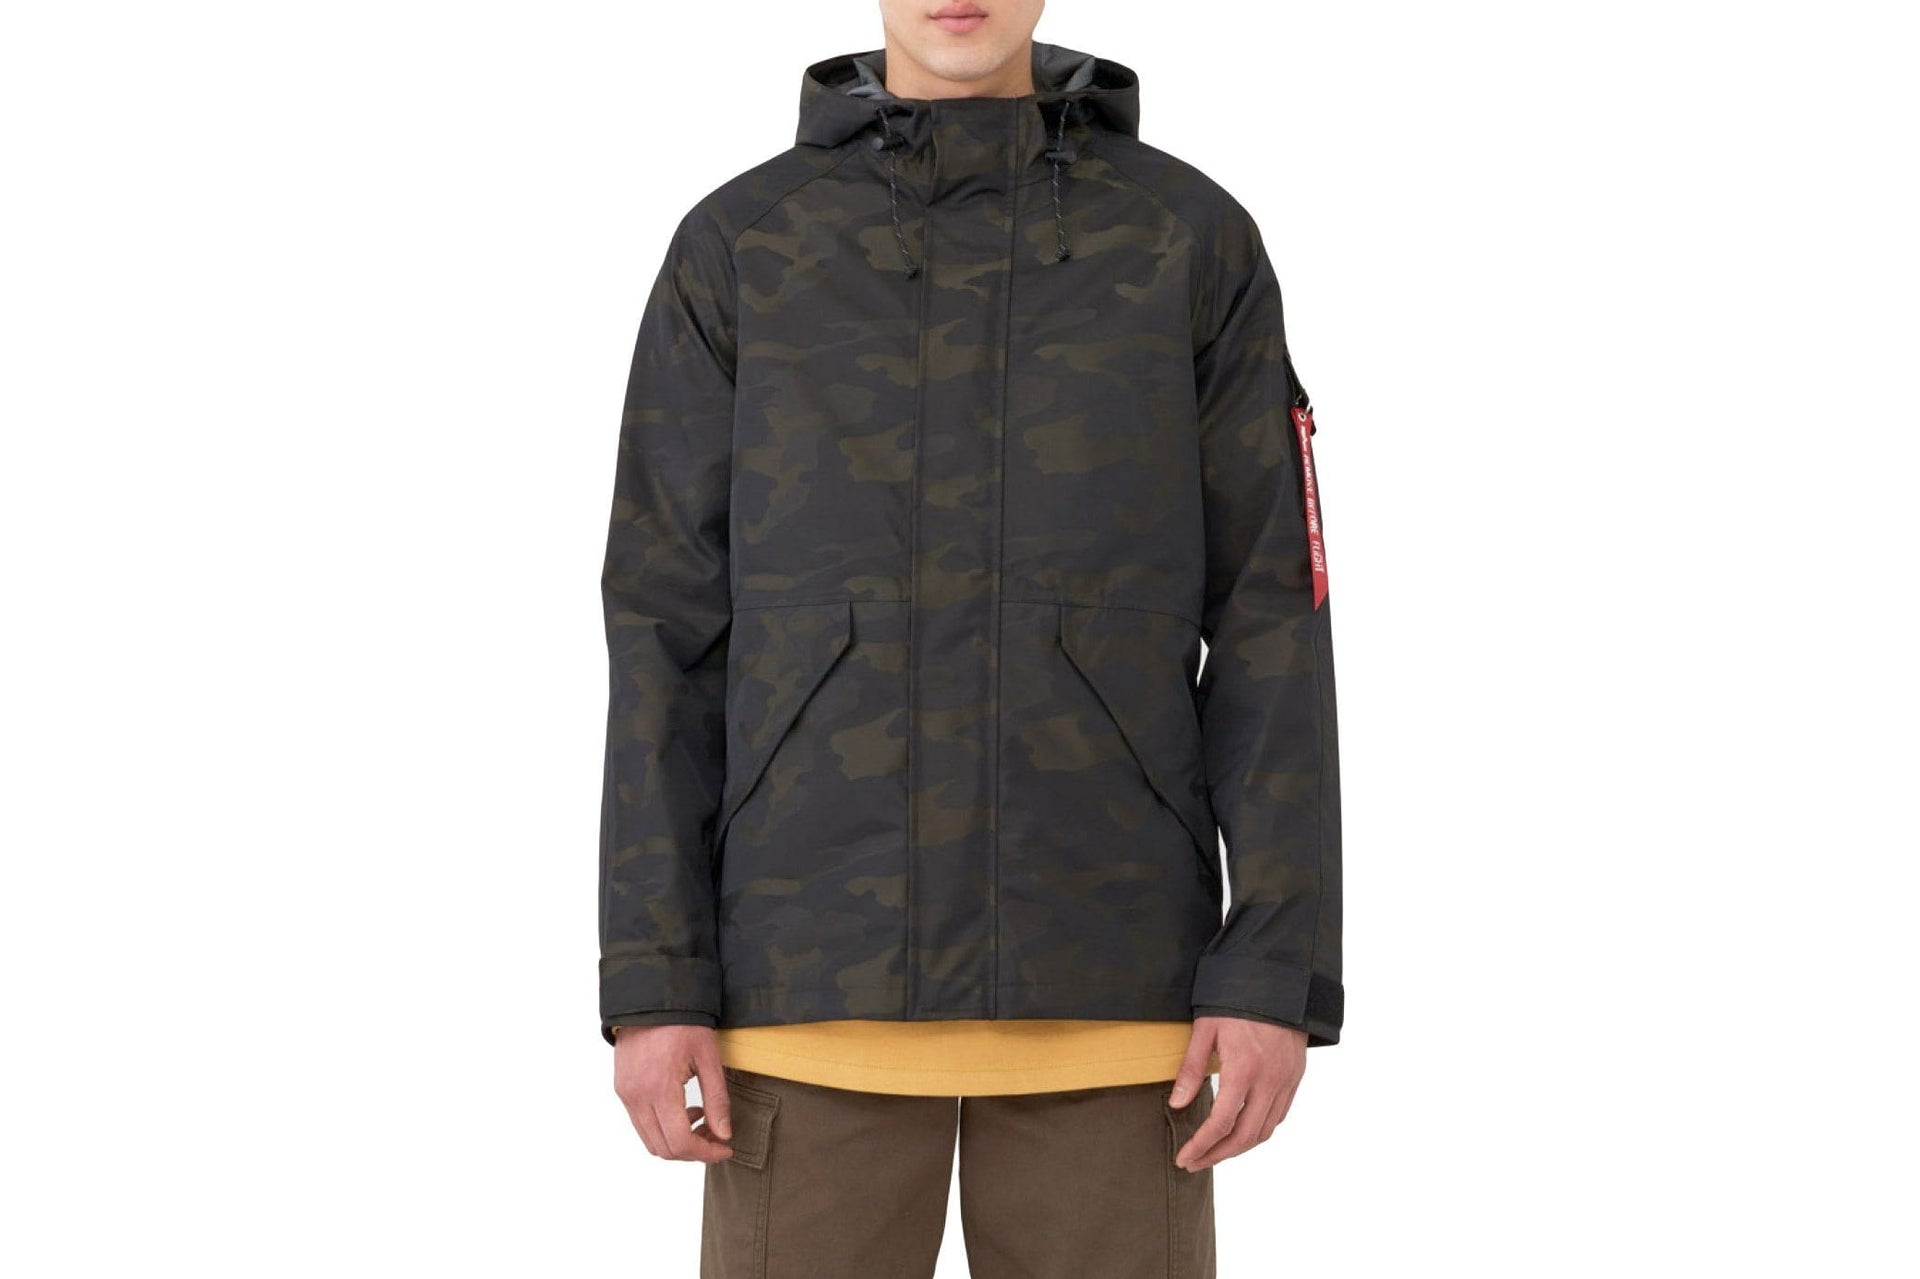 ECWCS TORRENT CAMO - MJE48002C1-974 MENS SOFTGOODS ALPHA INDUSTRIES